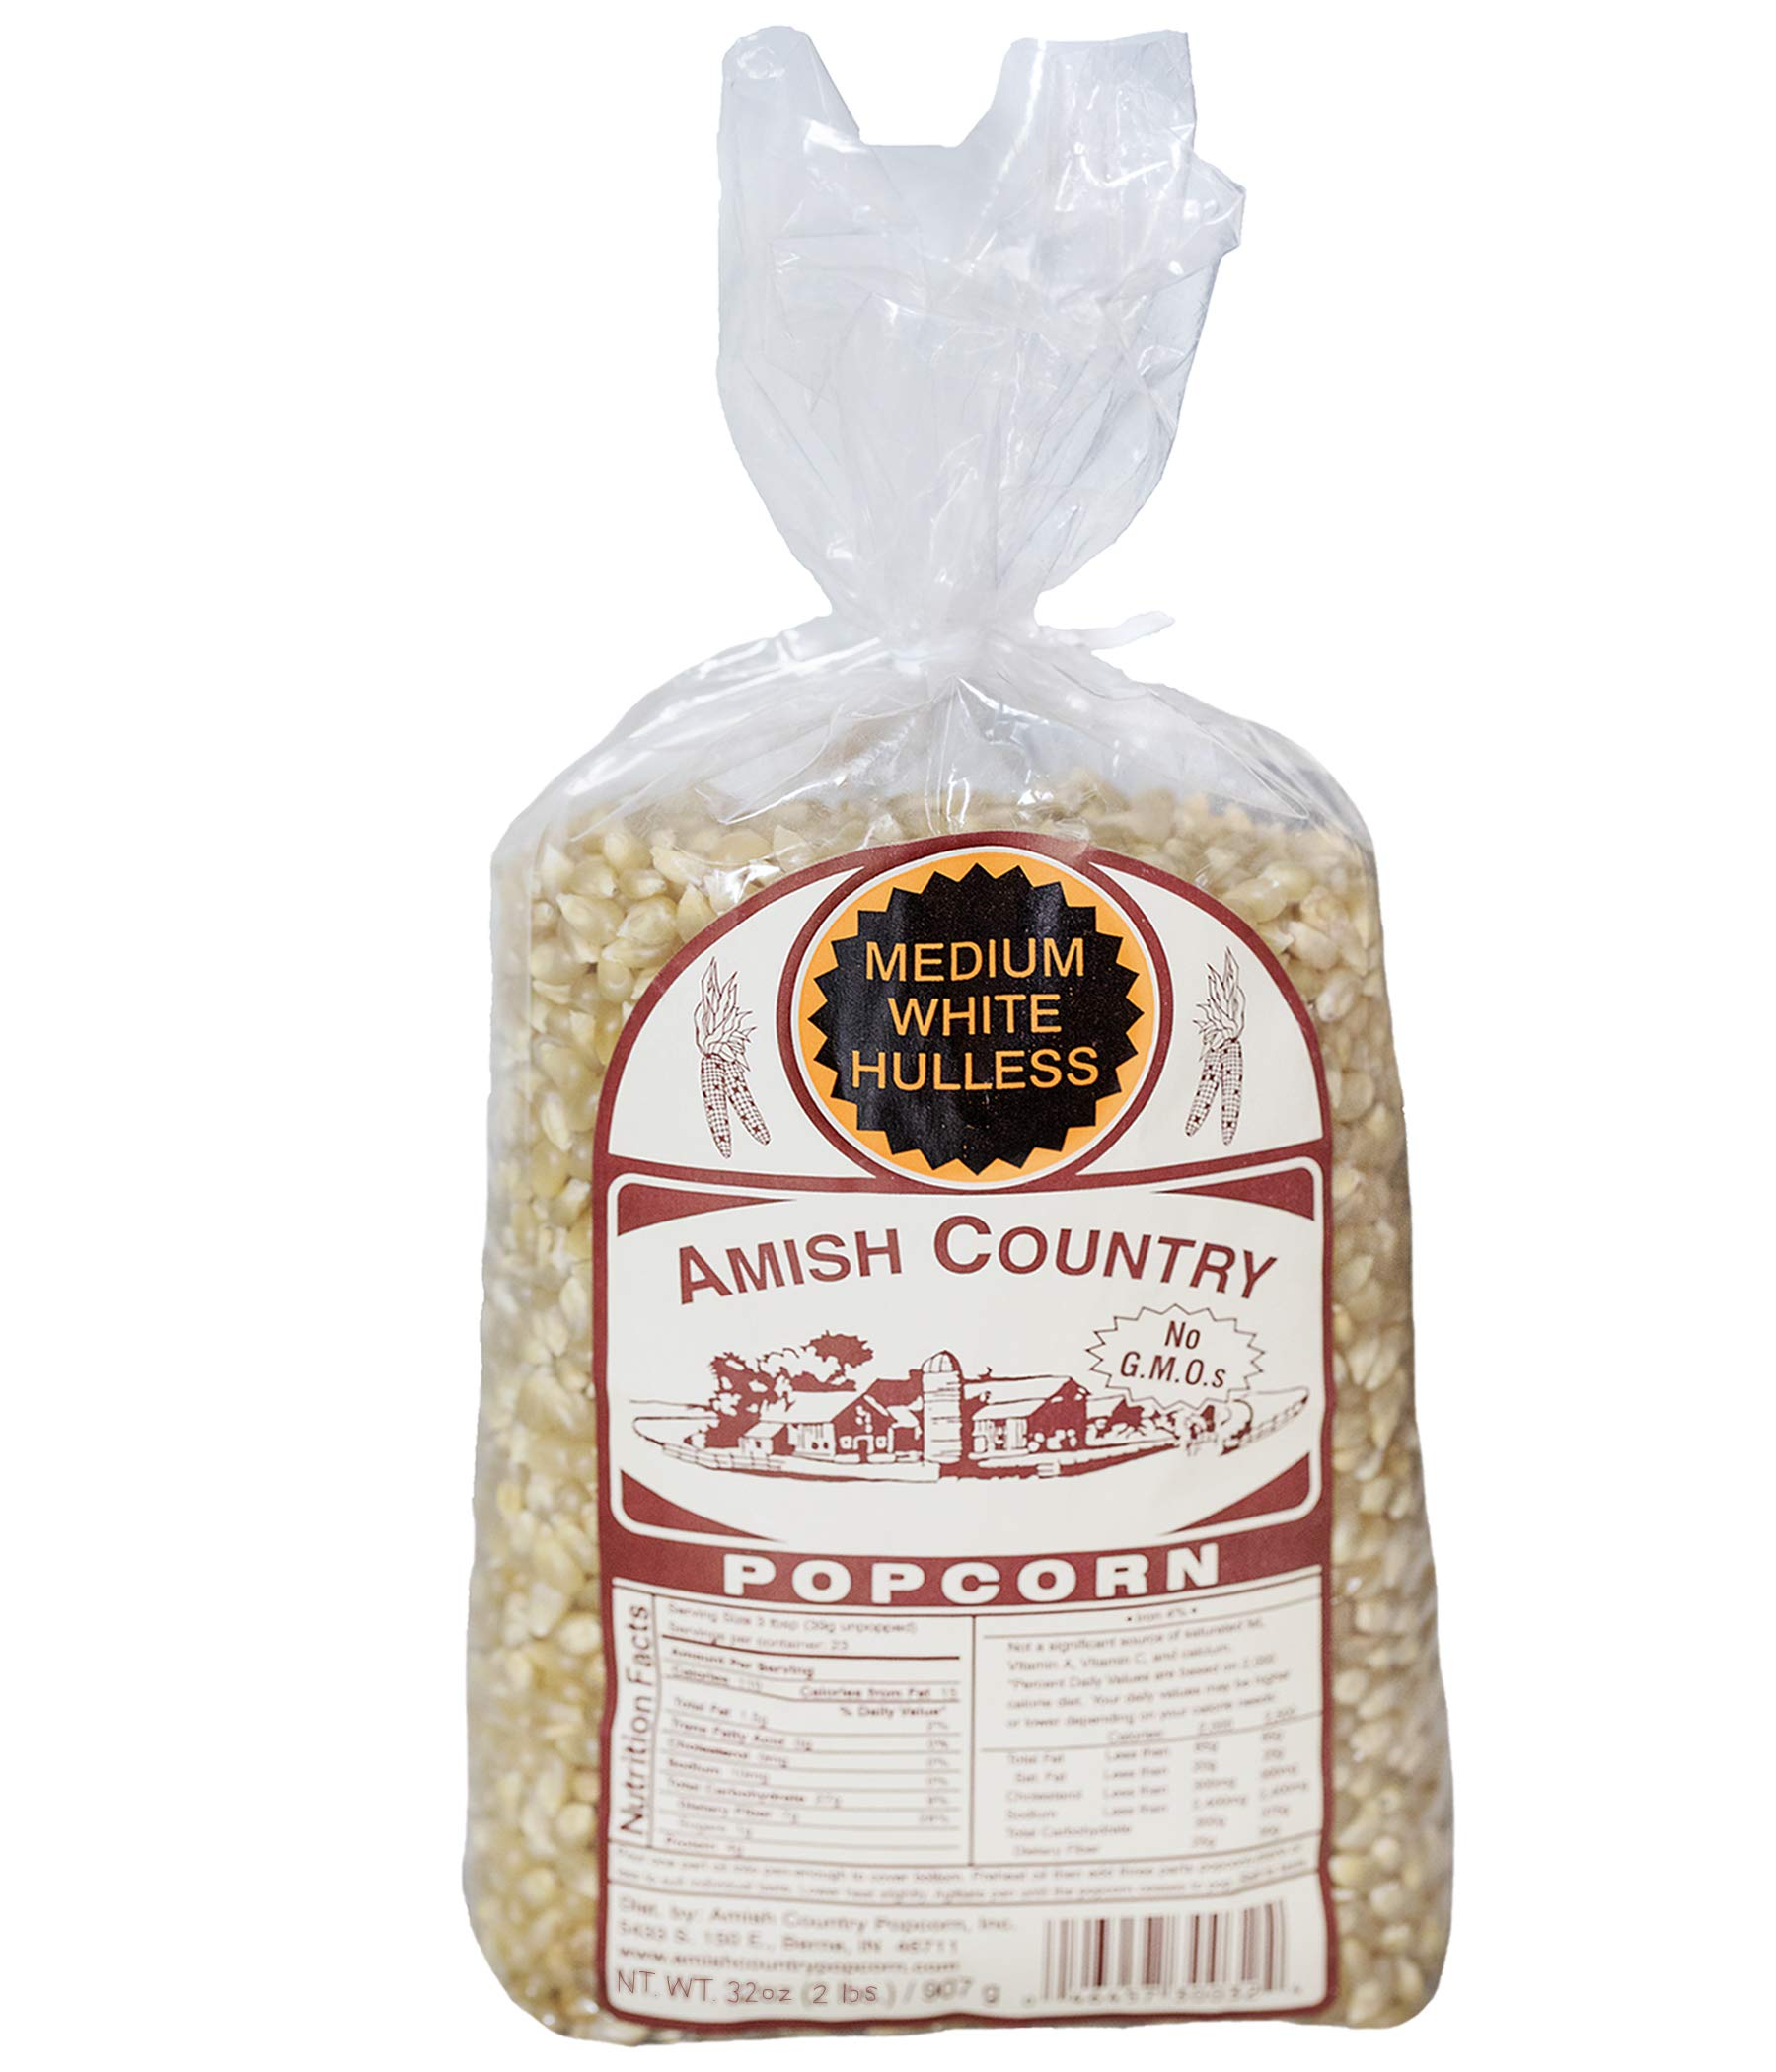 Amish Country Popcorn - Medium White Kernels (2 Pound Bag) Old Fashioned, Non GMO, and Gluten Free - with Recipe Guide by Amish Country Popcorn